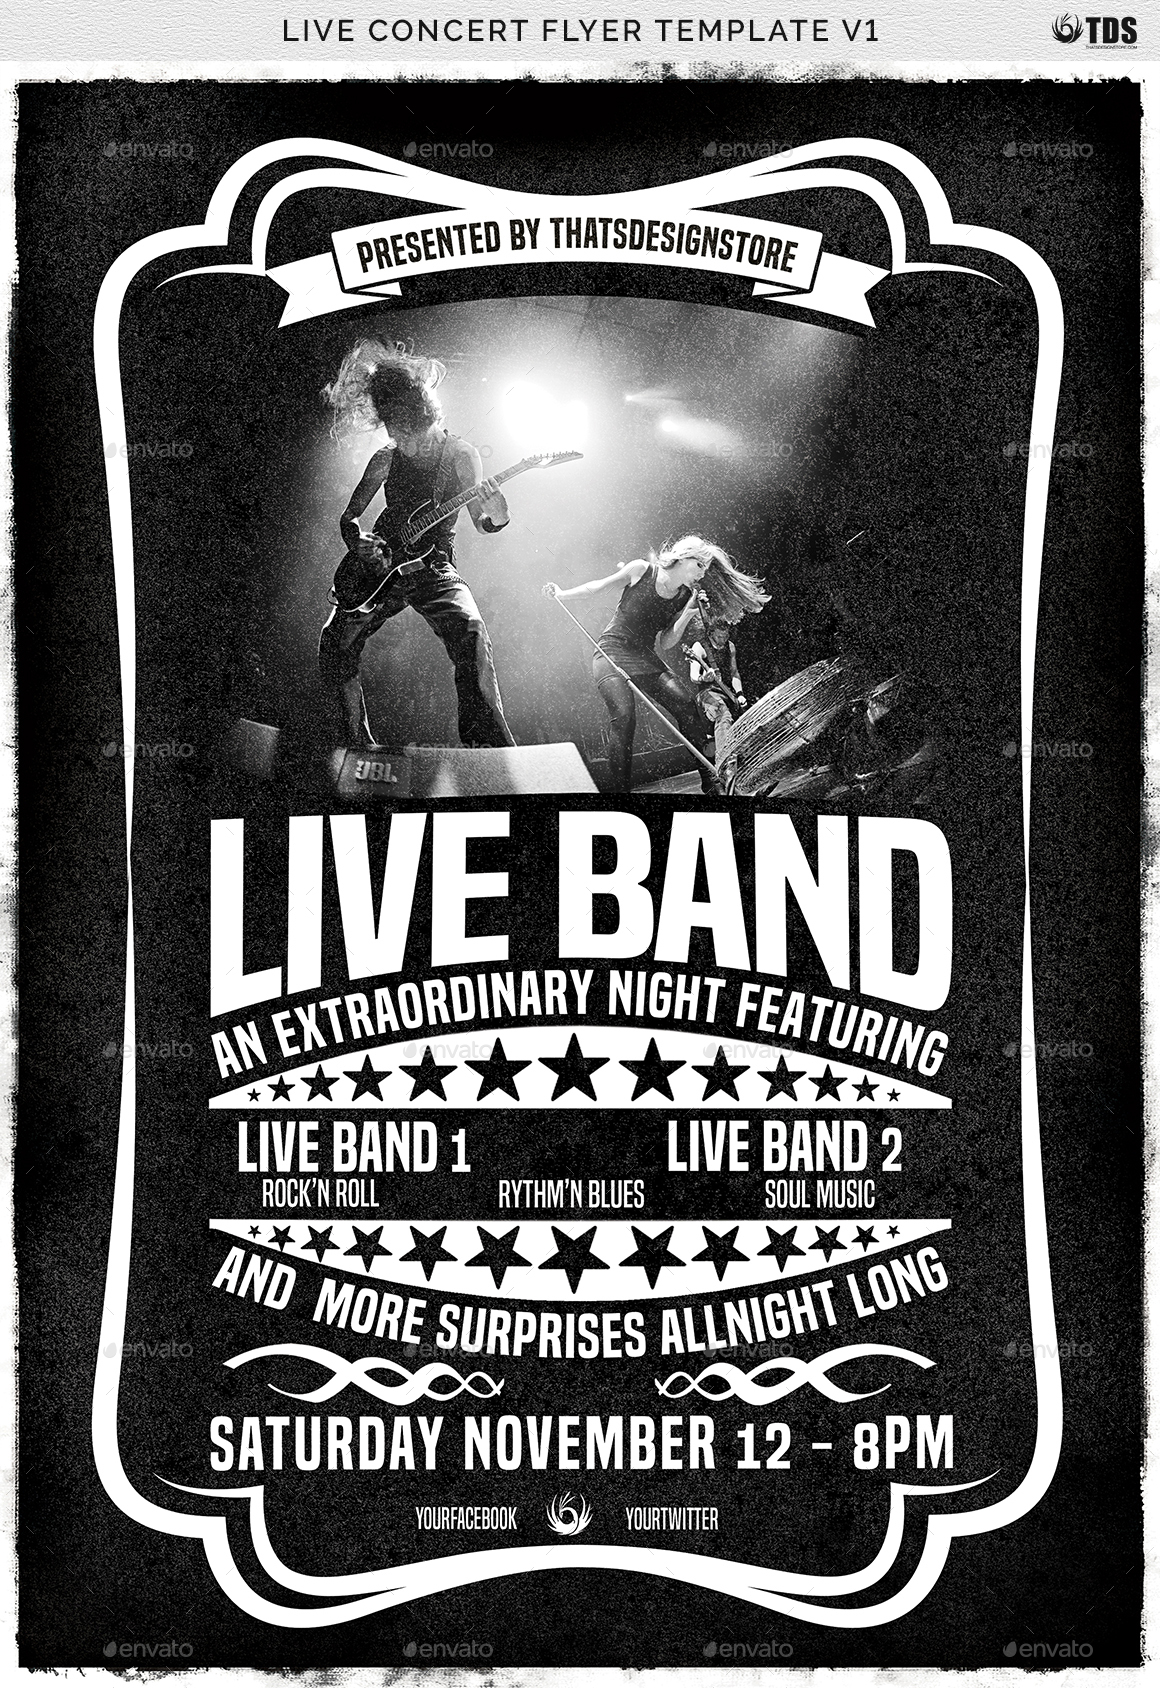 Band Flyer Template | Live Concert Flyer Template V1 By Lou606 Graphicriver